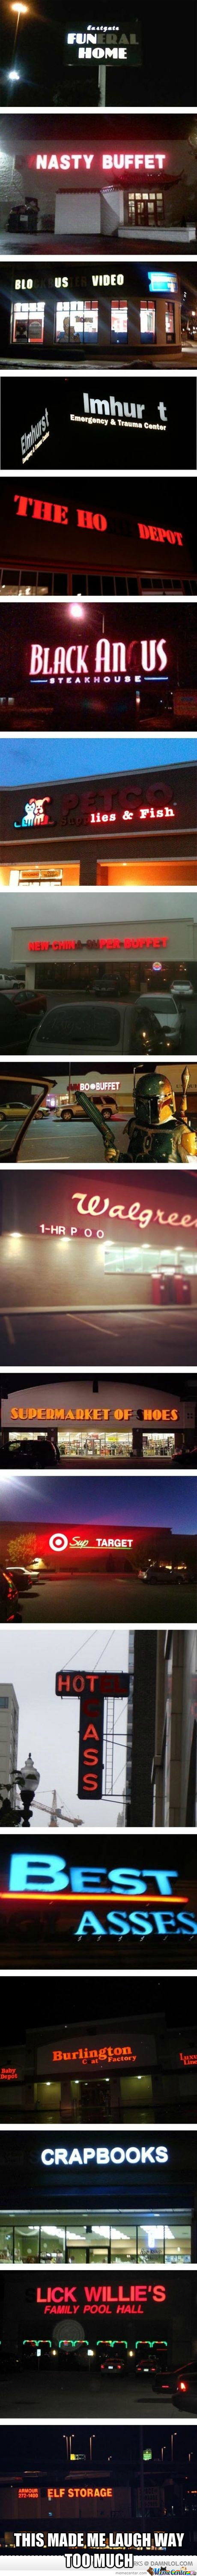 Unfortunate Burn Out Neon Signs